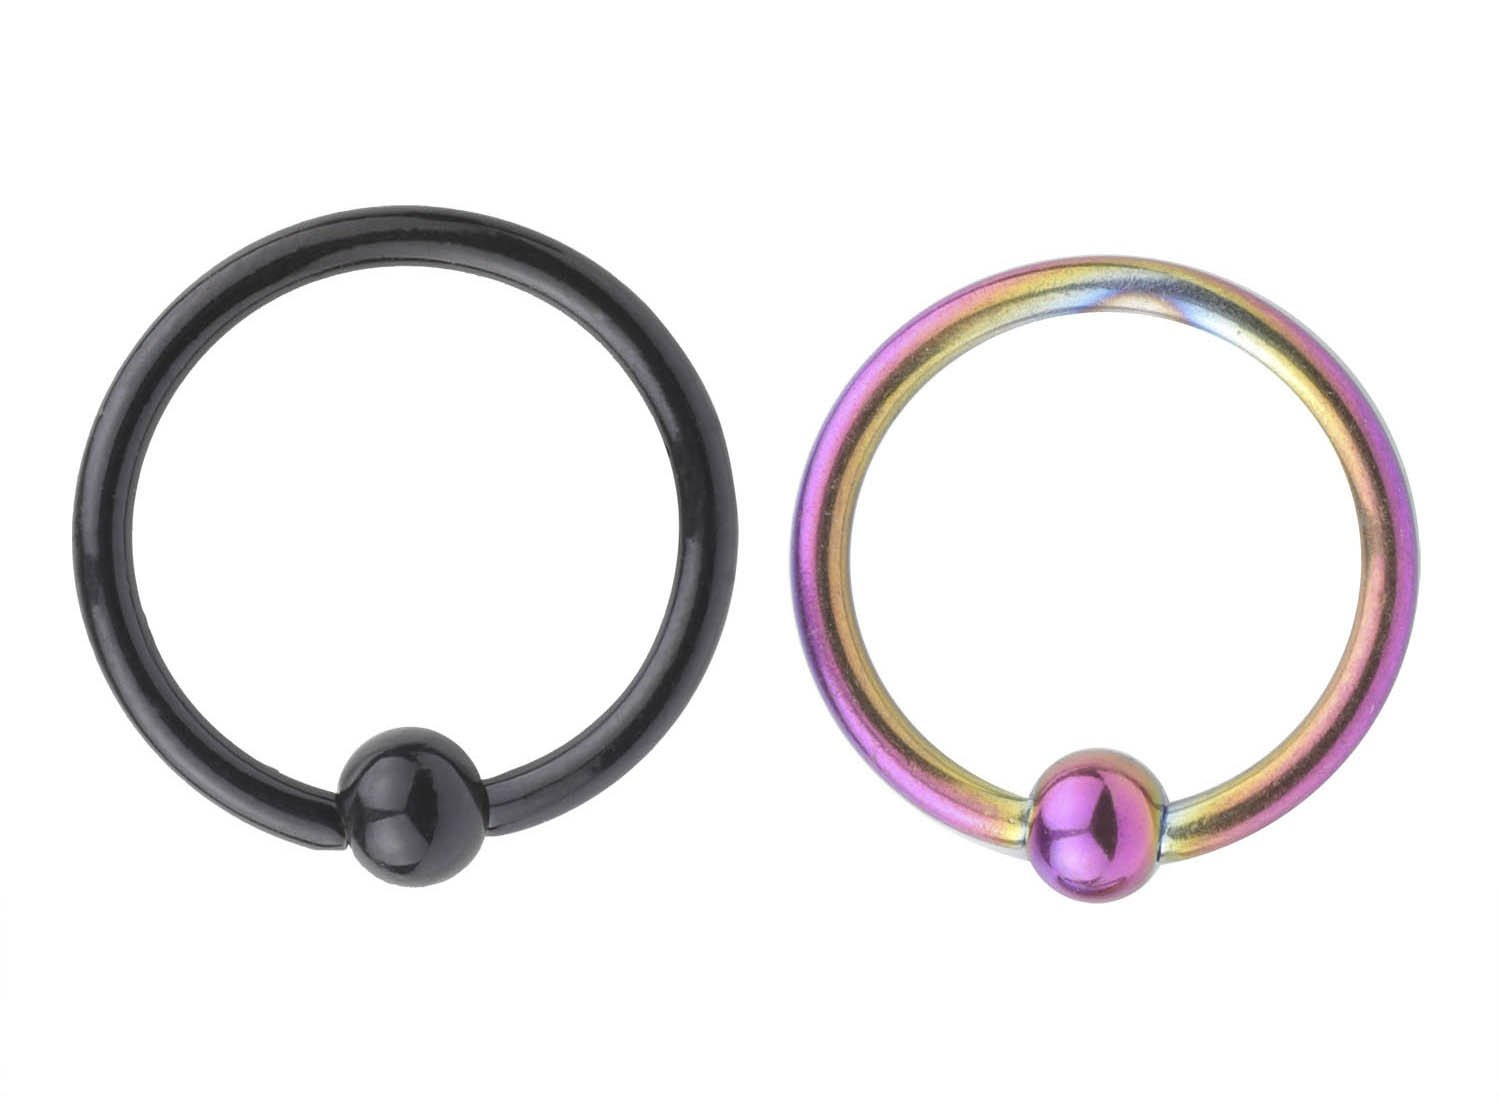 FB 16G 8mm 316L Surgical Steel Nose Hoop Lip Eyebrow Tongue Helix Tragus Cartilage Septum Piercing Ring